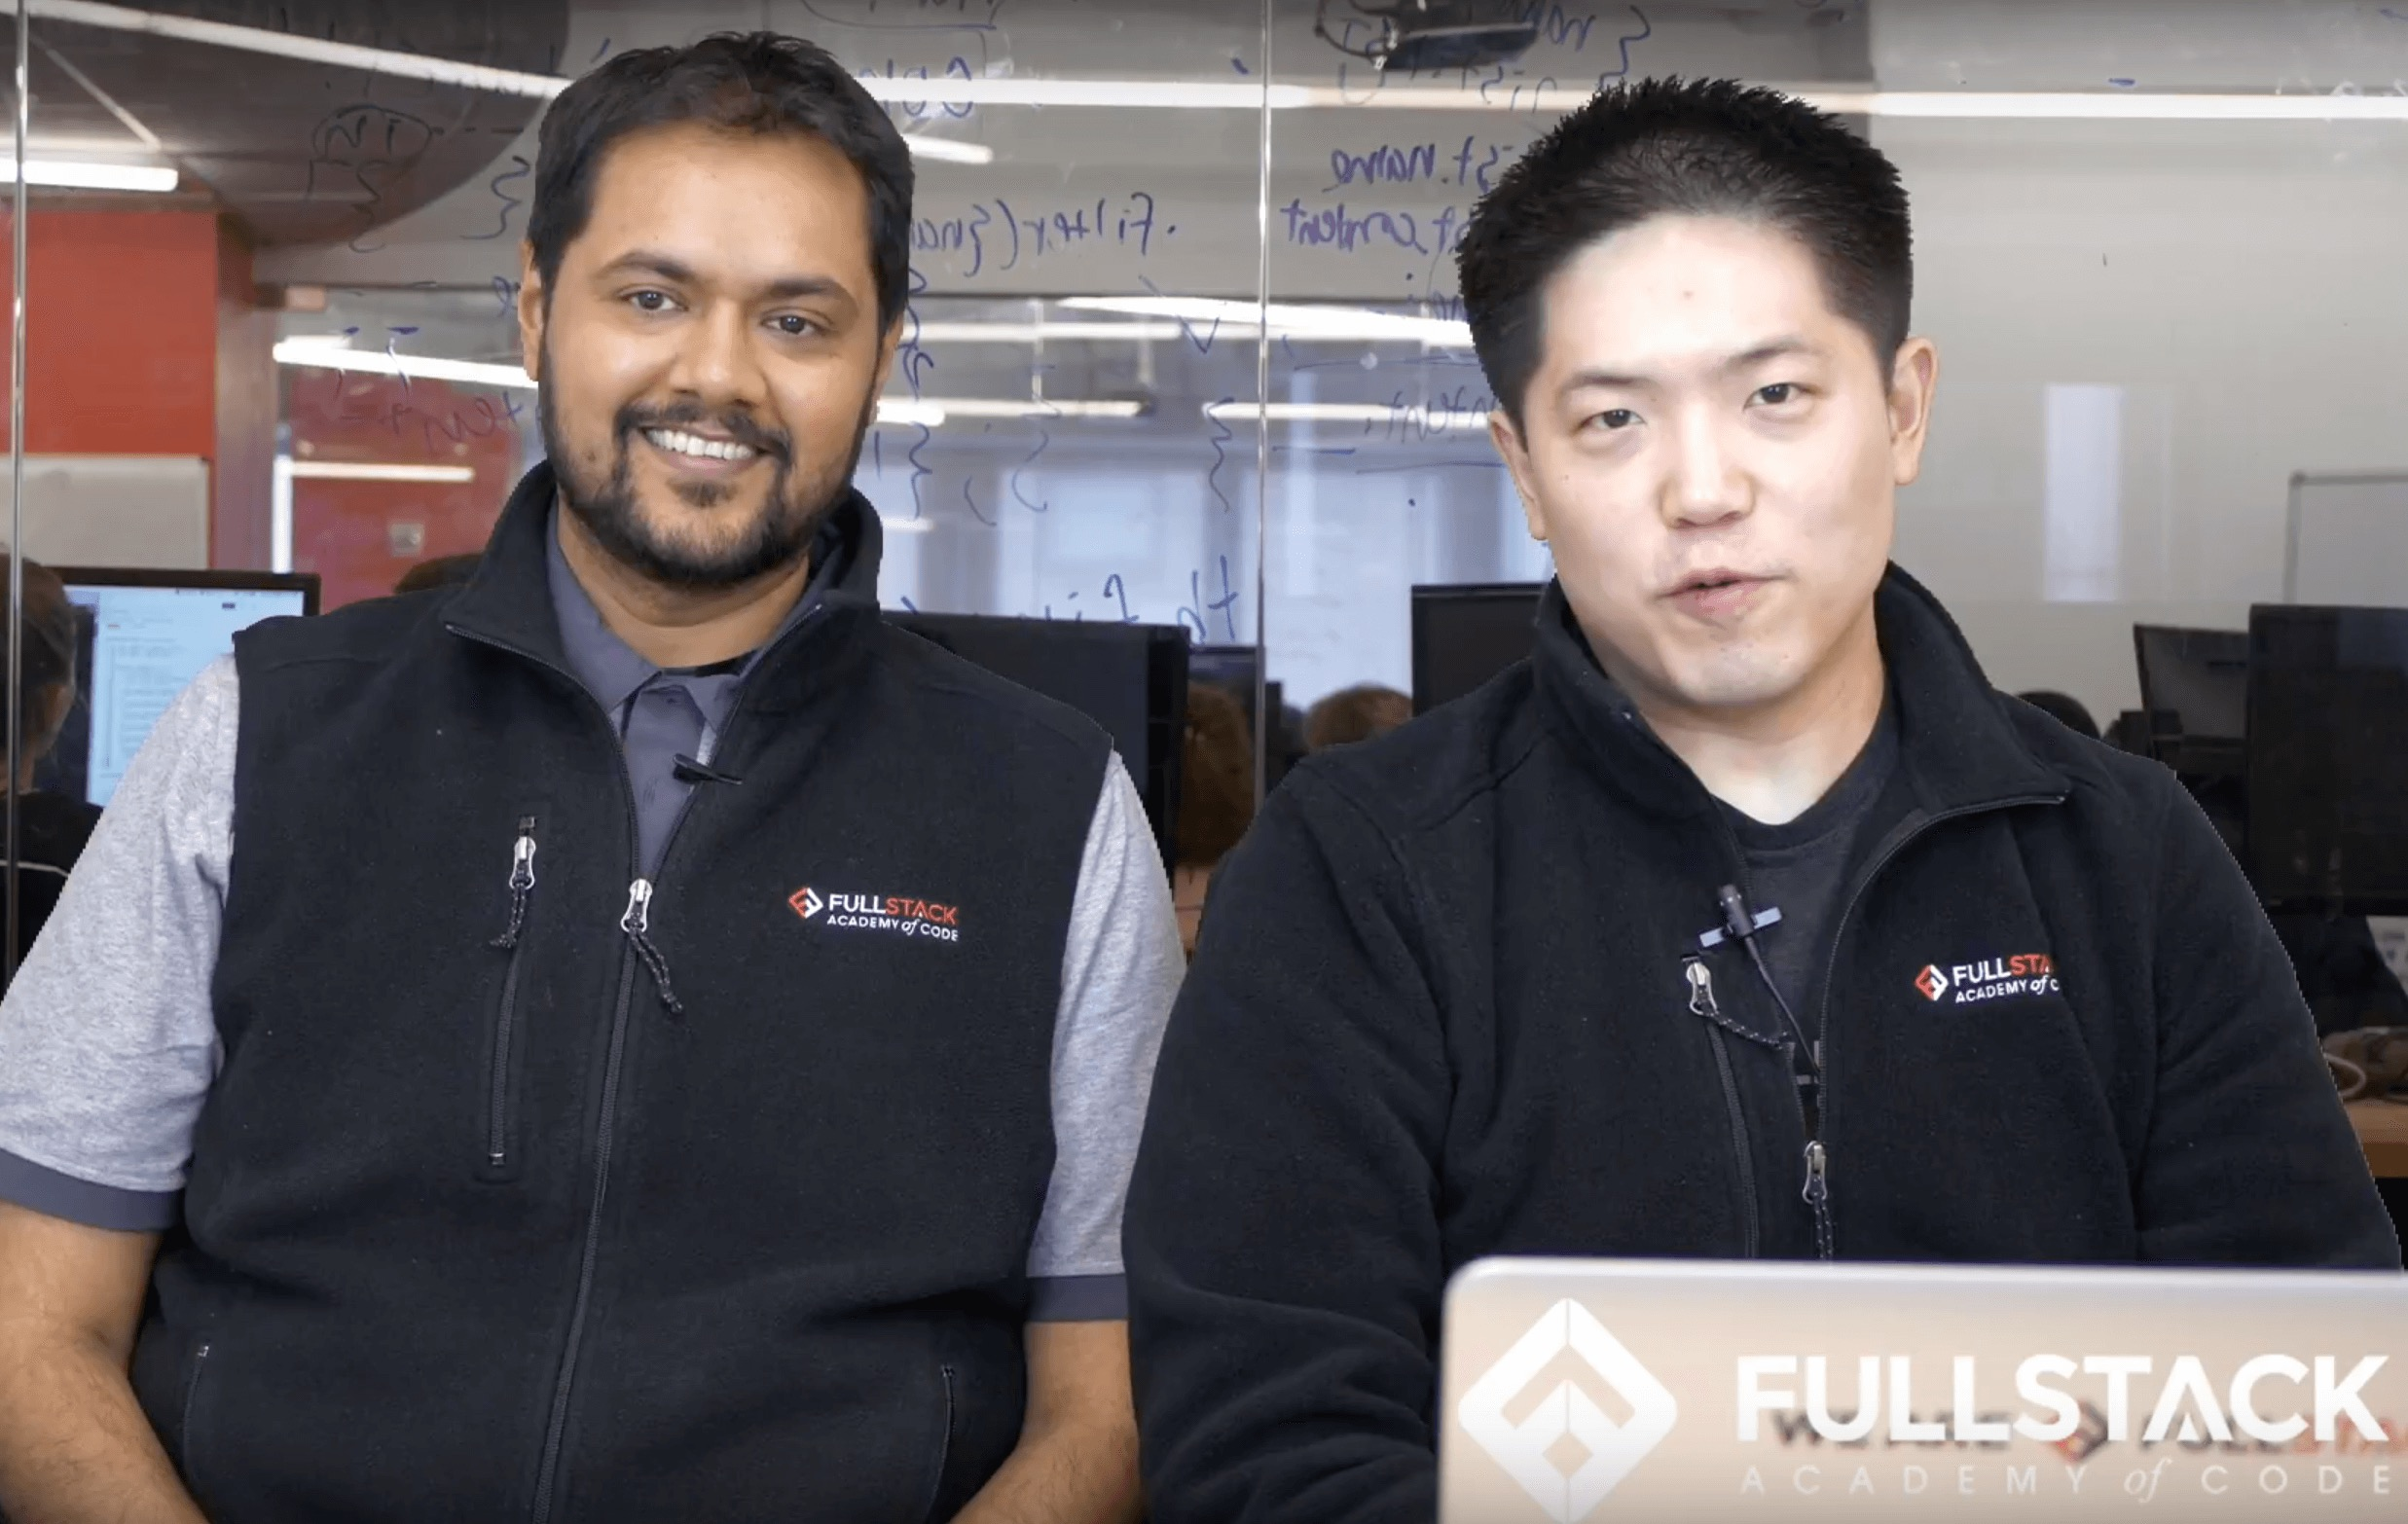 David and Nimit, Fulllstack Academy founders, teaching Bootcamp Prep Online